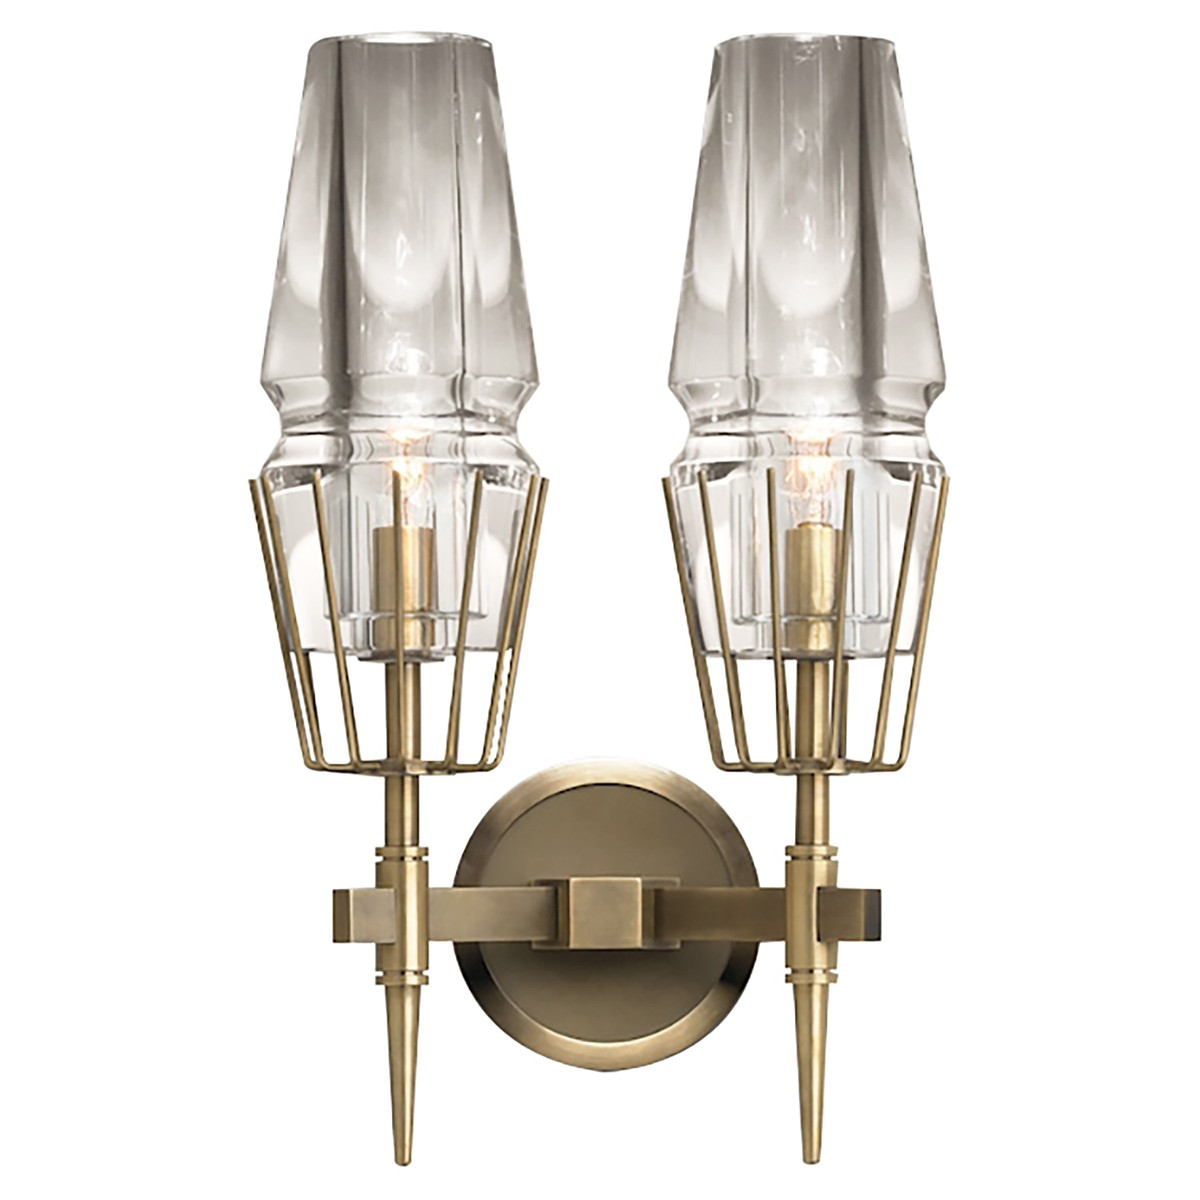 Replica Jonathan Browning Chaillot Wall Sconce, Double Light